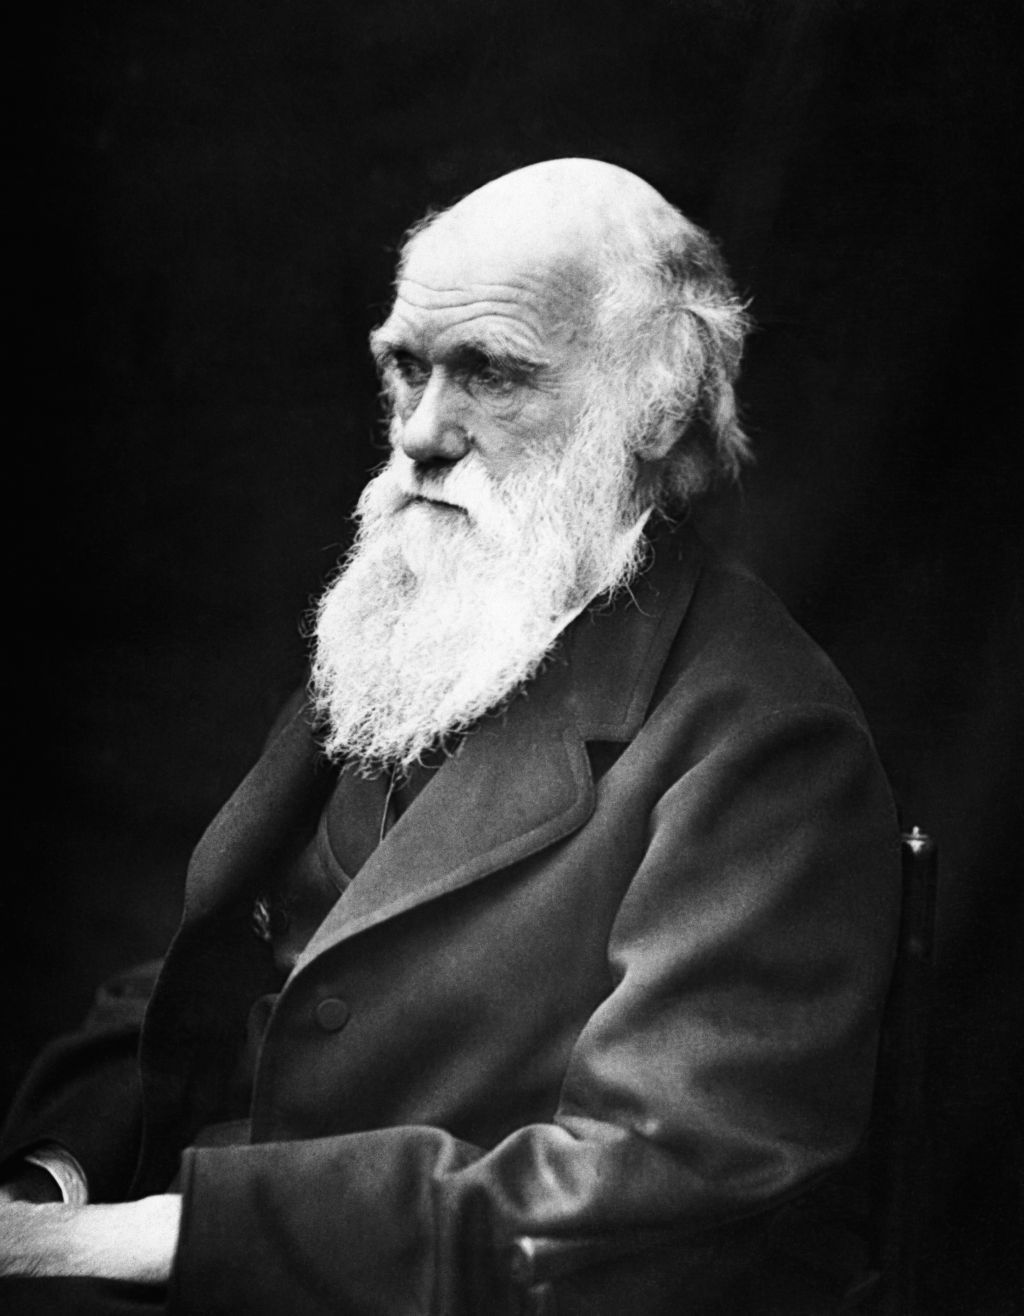 evolution reaction paper writework english charles darwin 1809 1882 in his later years this image